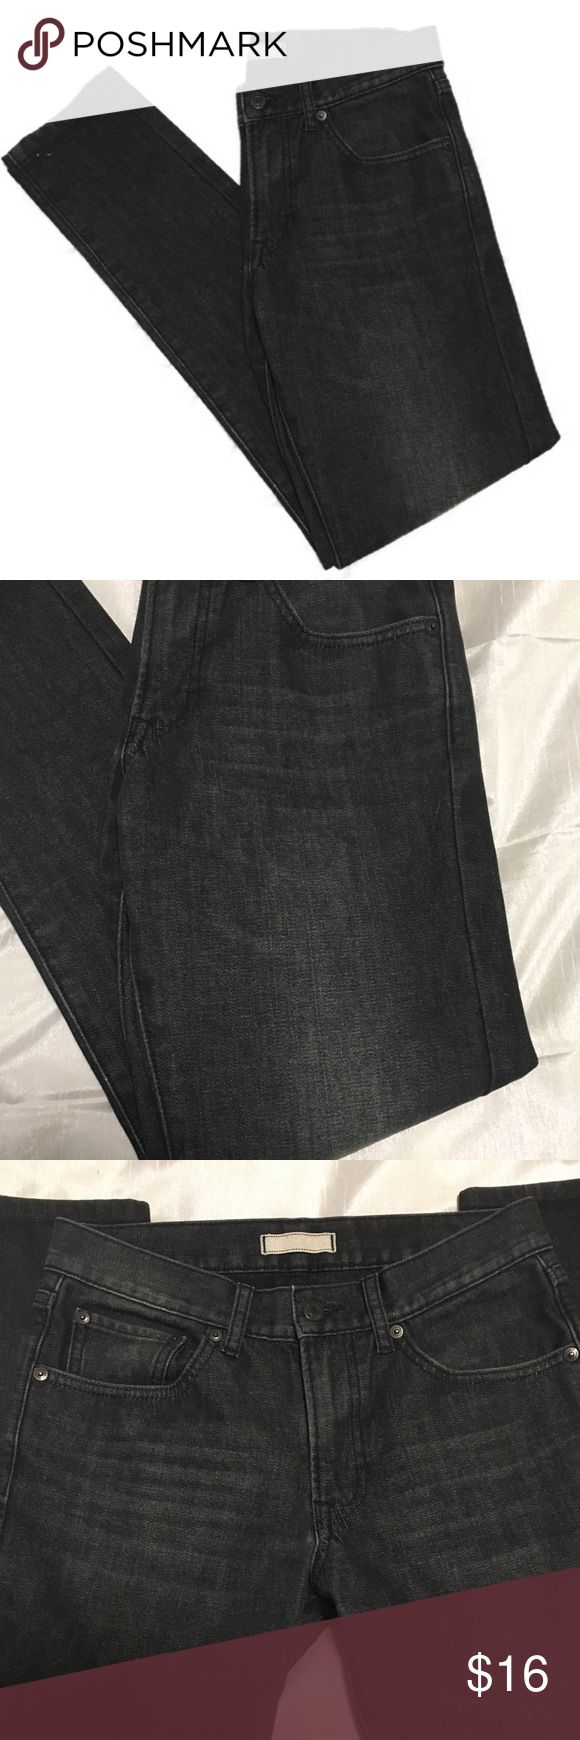 Uniqlo Black slim straight low rise jeans size 28 Uniqlo Jeans • size 28 • Slim straight fit • Low rise • Black/dark grey wash • In EXCELLENT condition  Approximate measurements • waist (flat): 14.5 • Rise: 9.25 • Inseam: 30.5 • Ankle: 5.5 Uniqlo Jeans Straight Leg